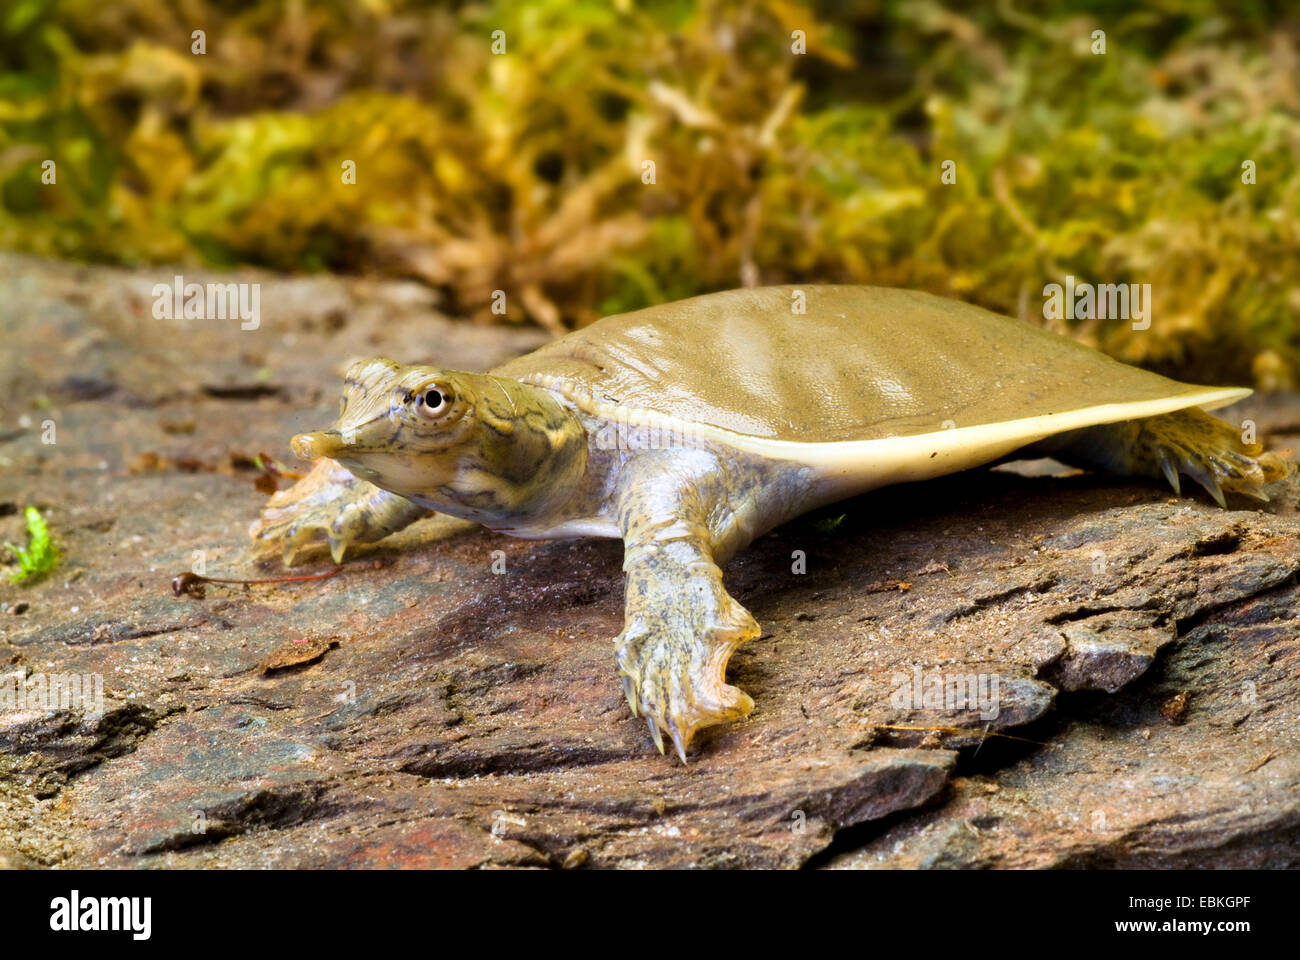 Spiny softshell turtles (Trionyx spiniferus, Apalone spinifera), on a stone - Stock Image